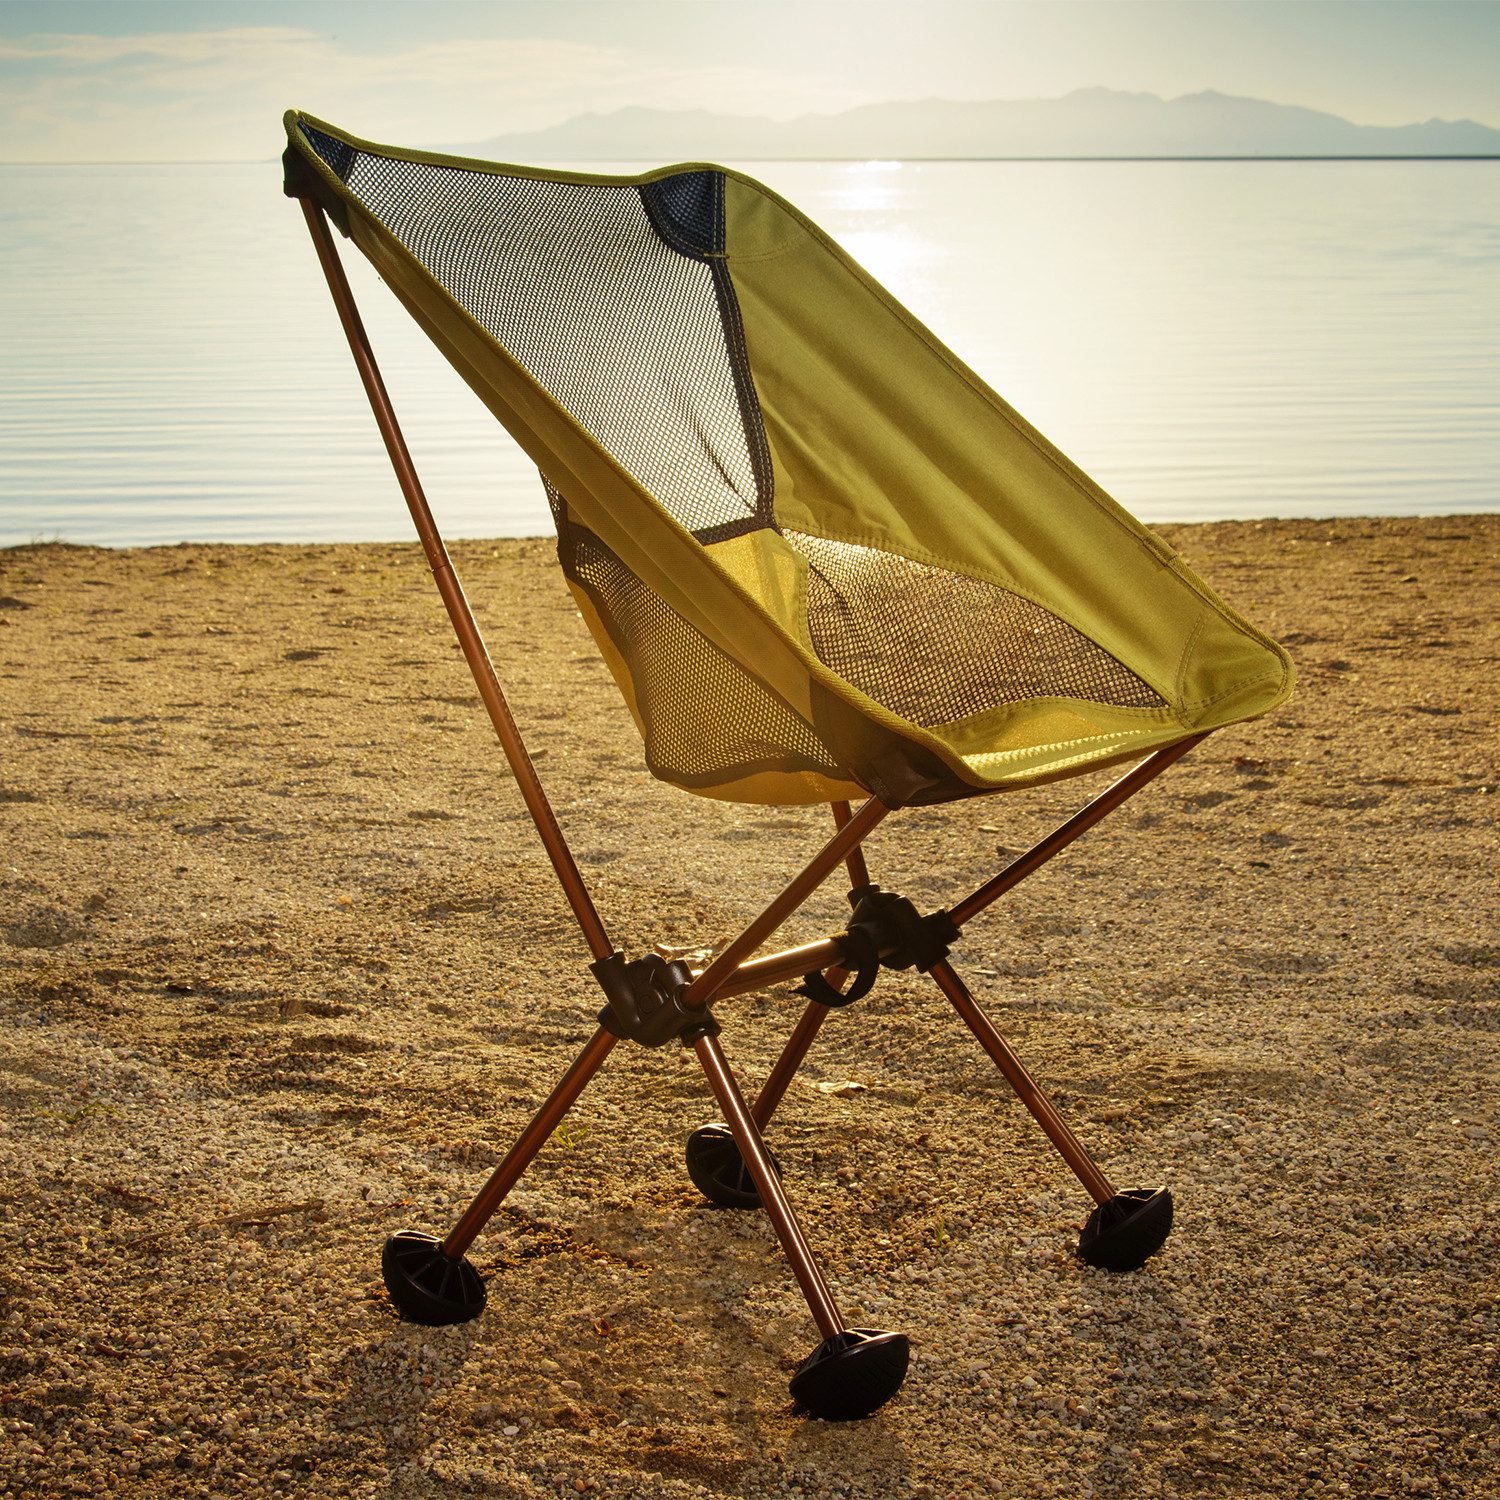 beach chairs on clearance wood long chair design wildhorn outfitters terralite portable camping 43